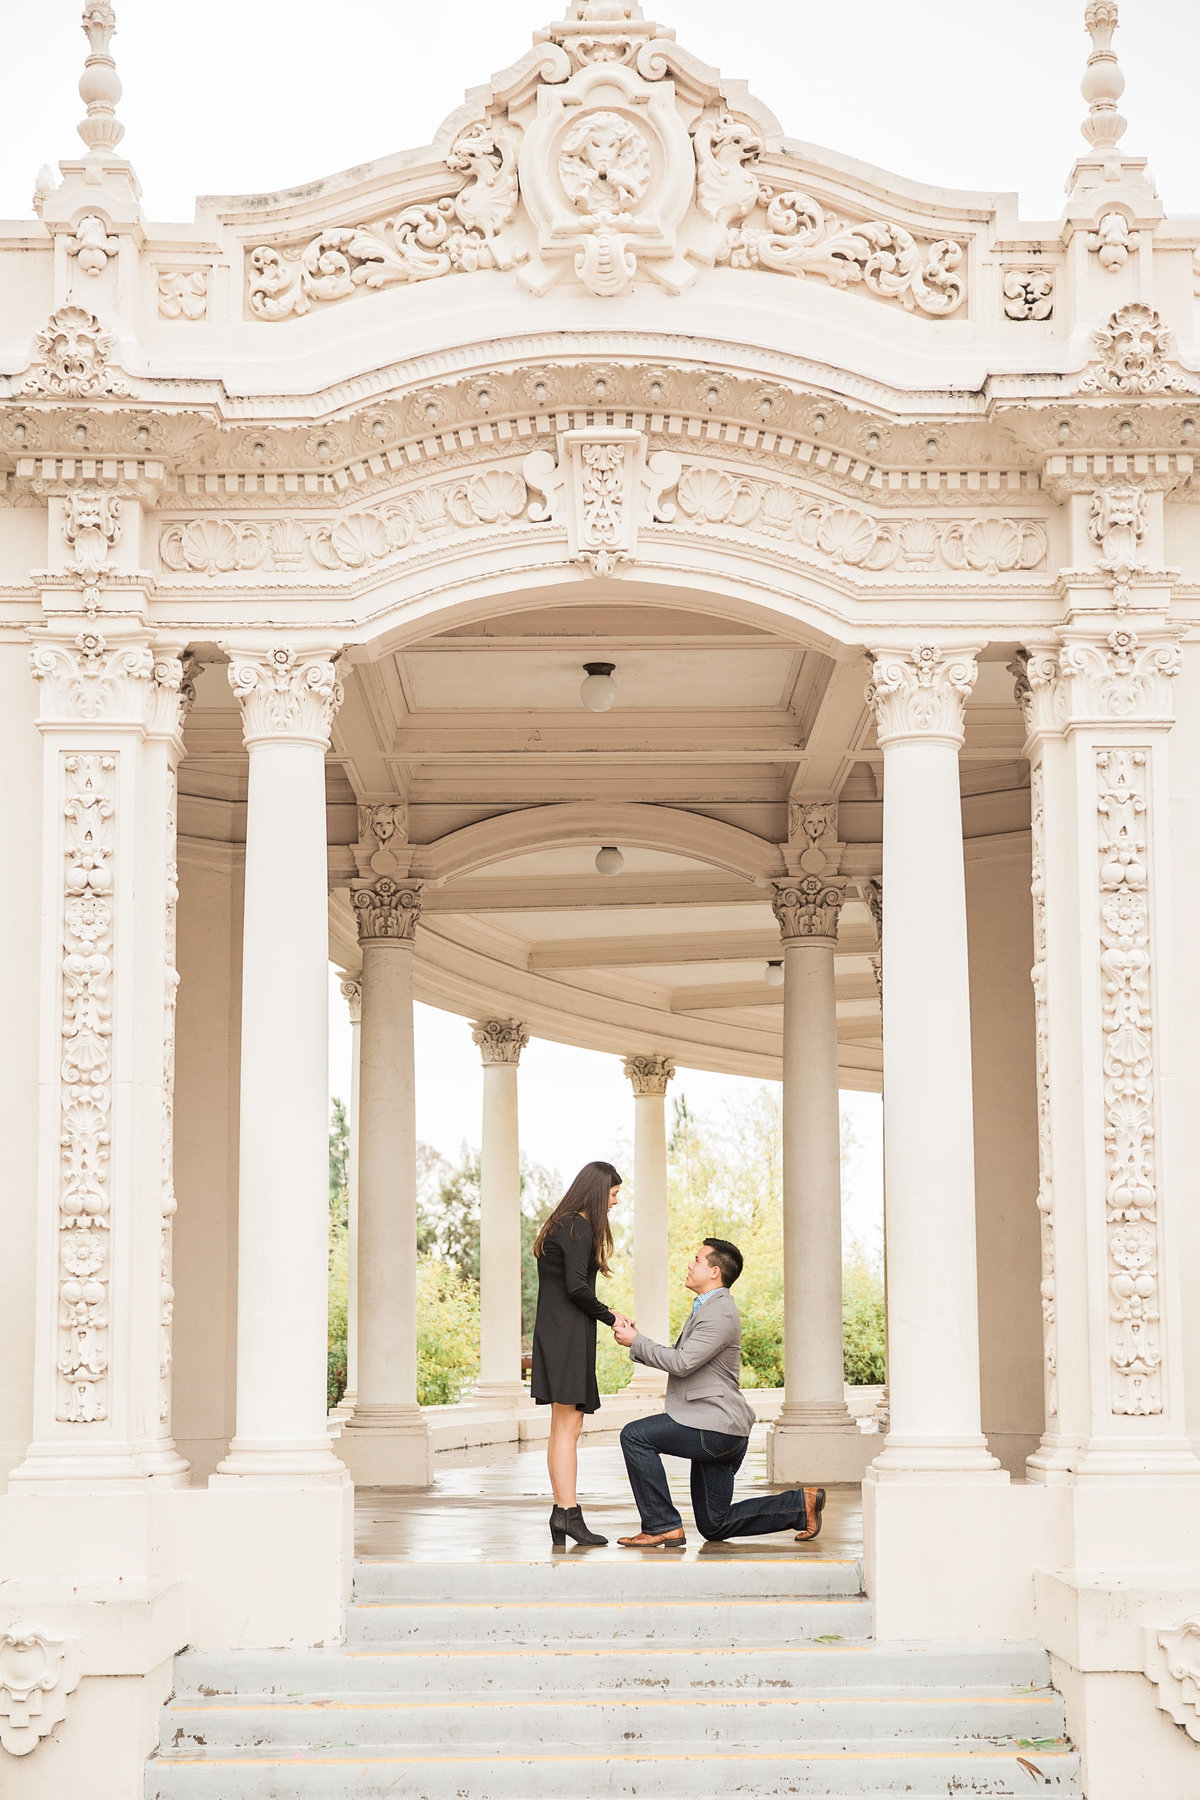 Babsie-Ly-Photography-Fine-Art-Film-Surprise-Proposal-Photographer-San-Diego-California-Balboa-Park-Botanic-Gardens-001